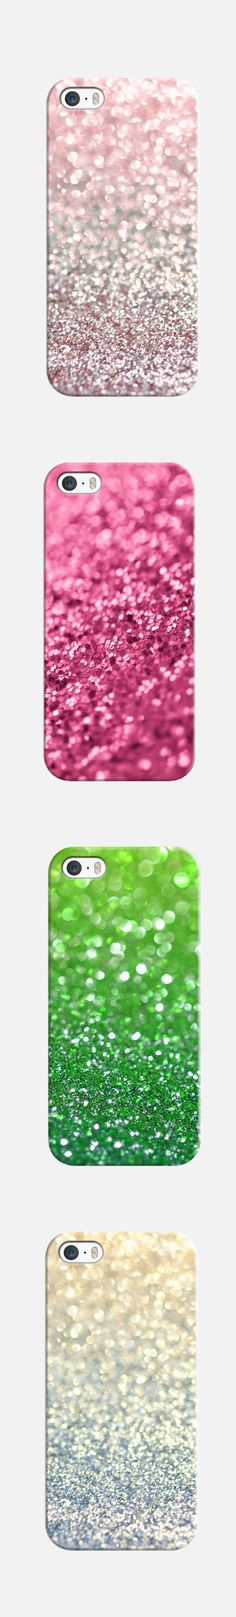 Glitter, glitter and more glitter | Sparkle and Shine phone cases